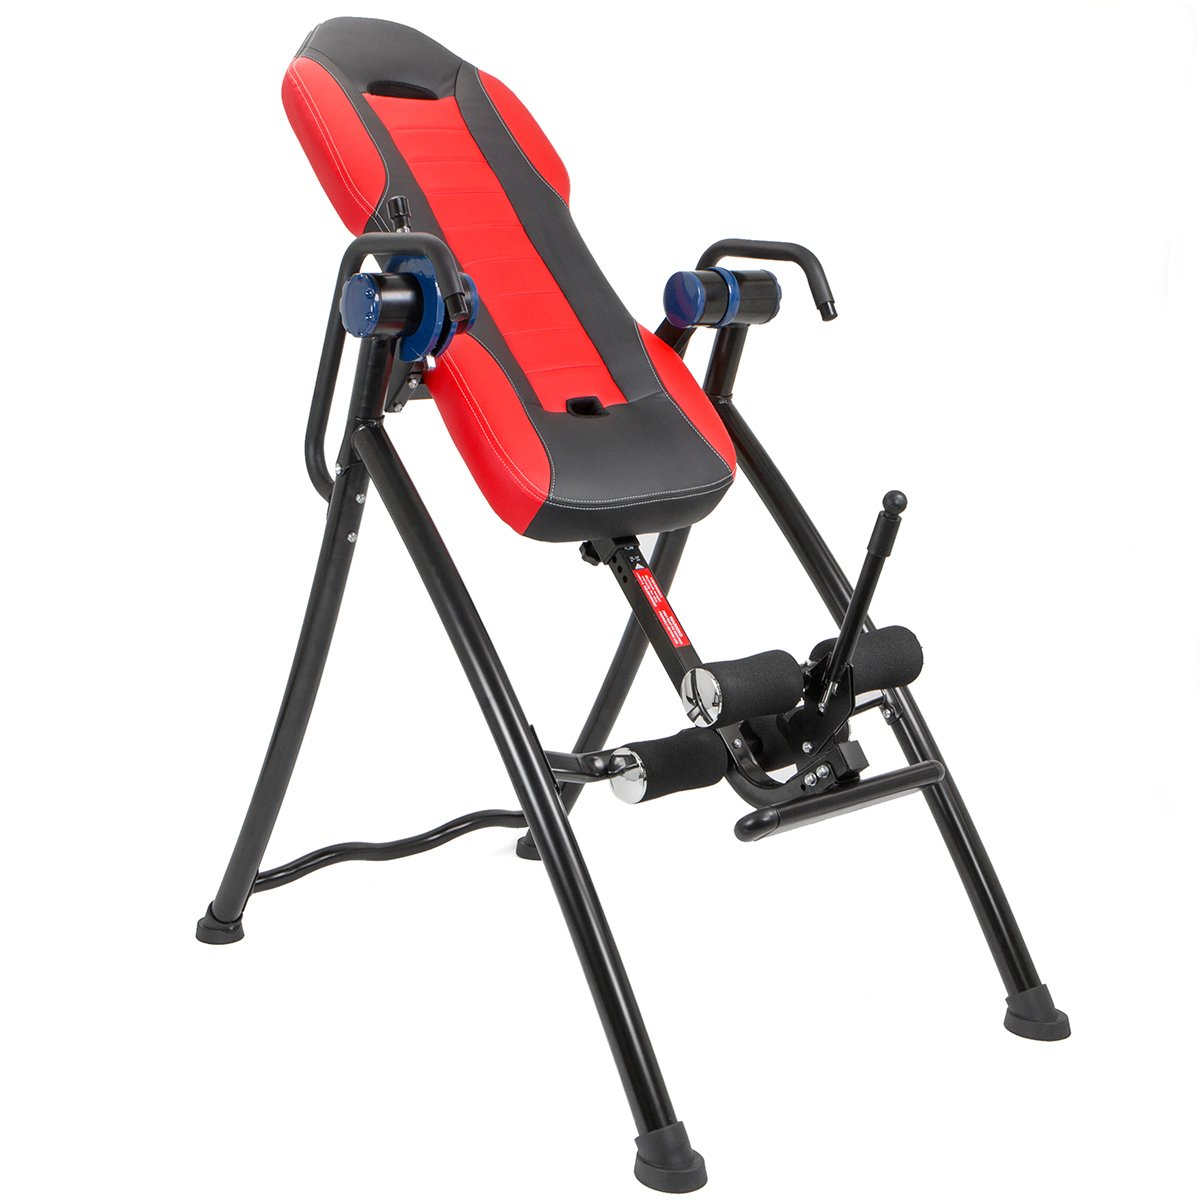 XtremepowerUS Gravity Inversion Therapy Table Fitness Back Pain Relief w/ Padded Backrest by XtremepowerUS